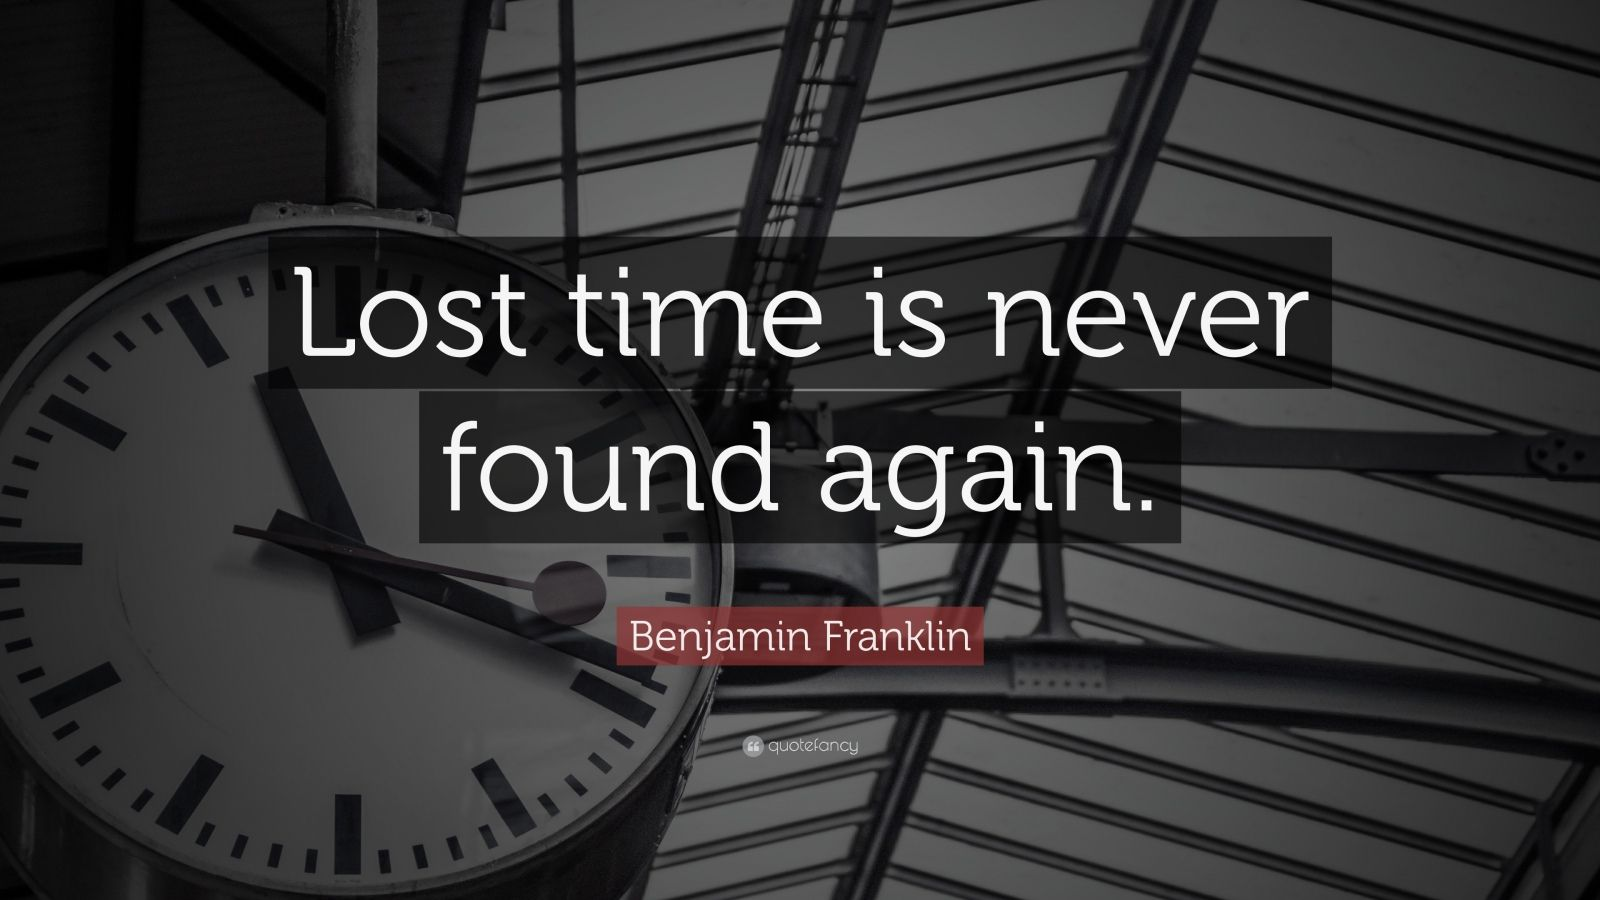 lost time is never found It means do not waste time as time wasted cannot be regained or failure to accomplish a particular task while you had the time will not present itself again.